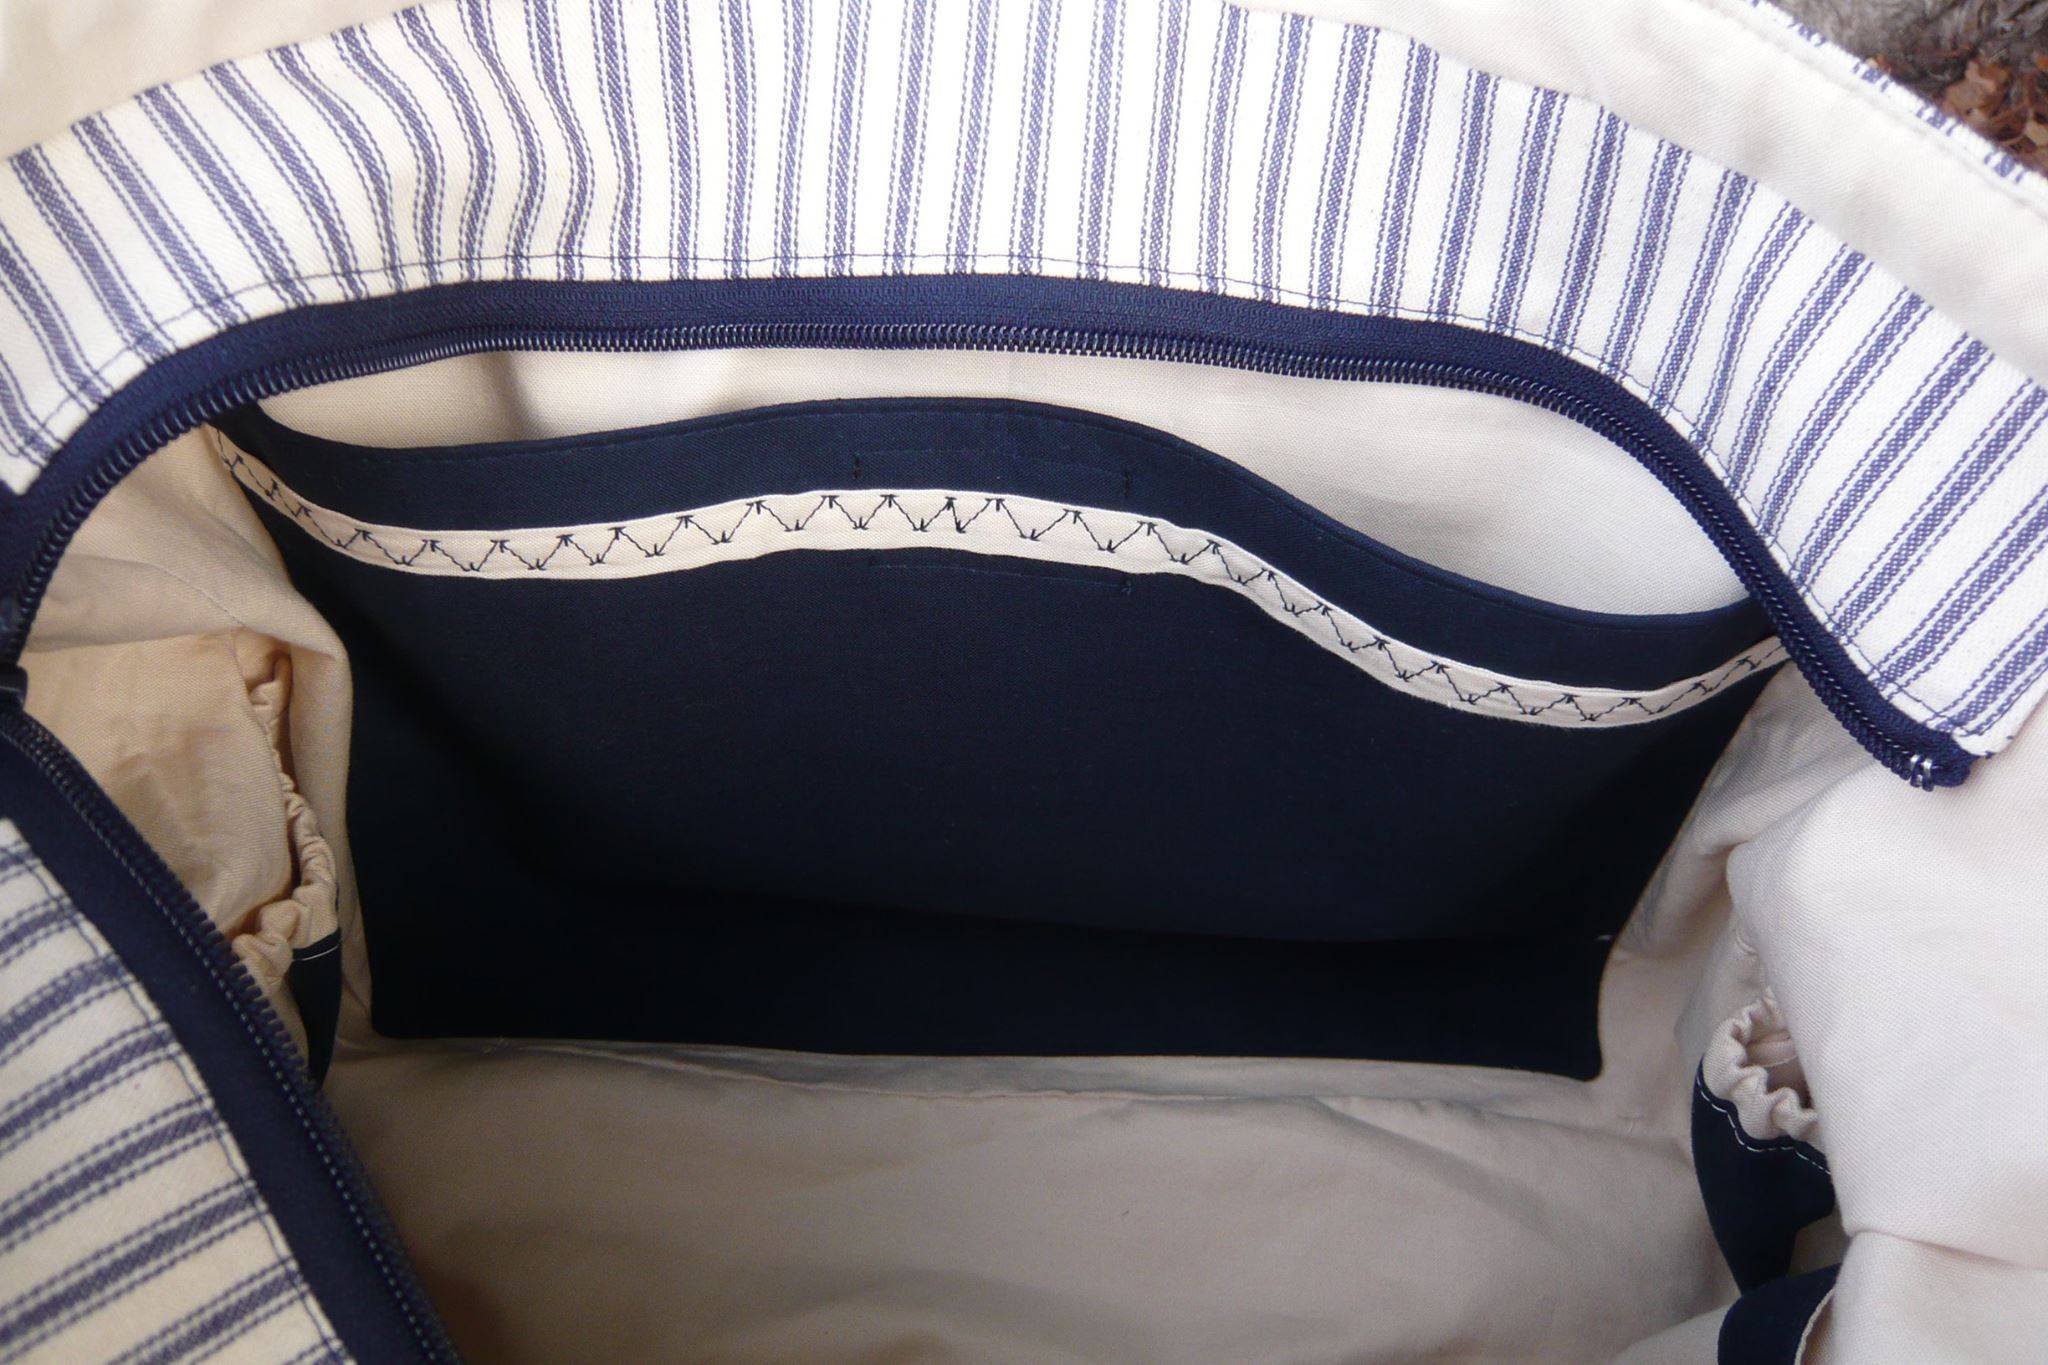 Paula added a beautiful line of accent stitching to her padded tablet pocket. You can also see a little bit of the expandable slip pockets on the sides of the inside of the tote in this picture.